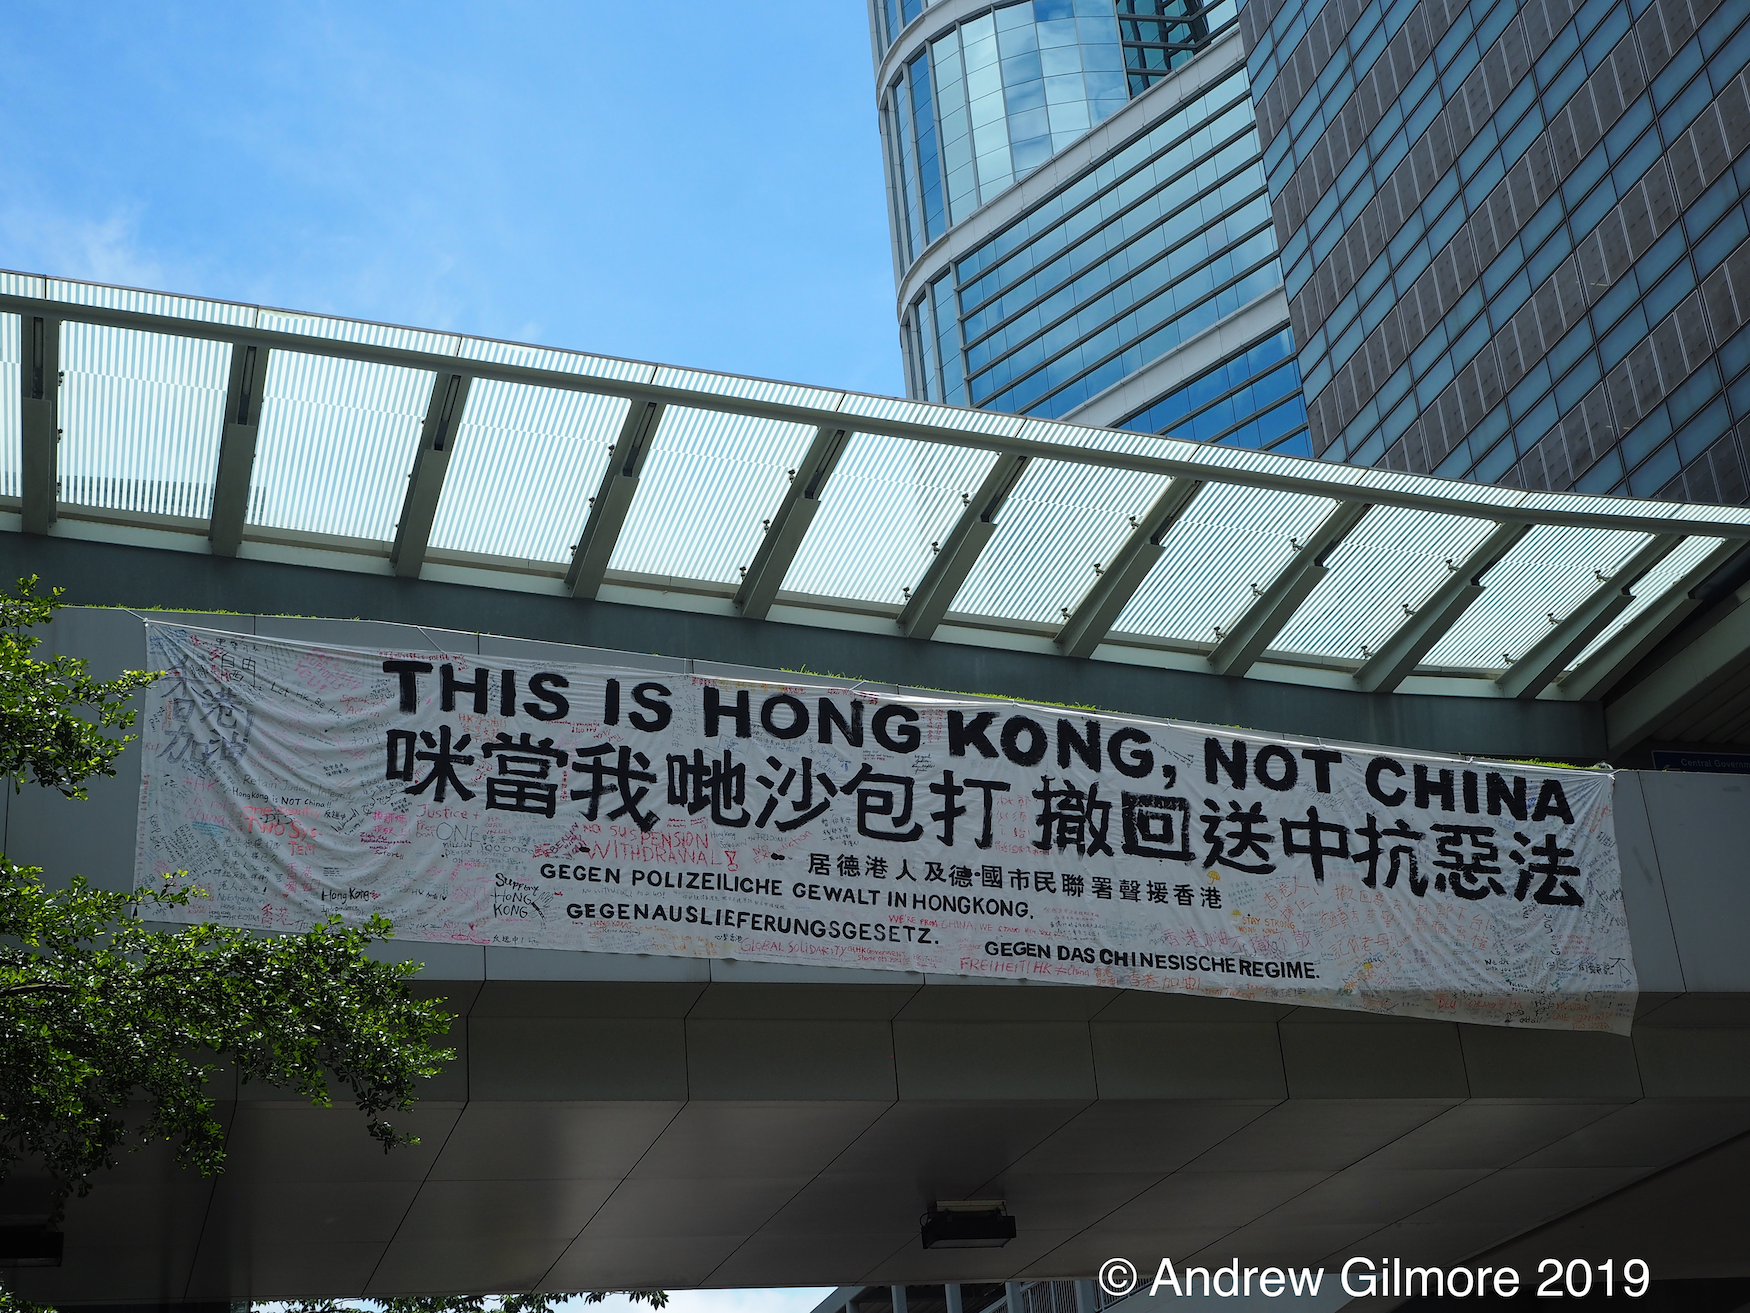 Hong Kong not China banner